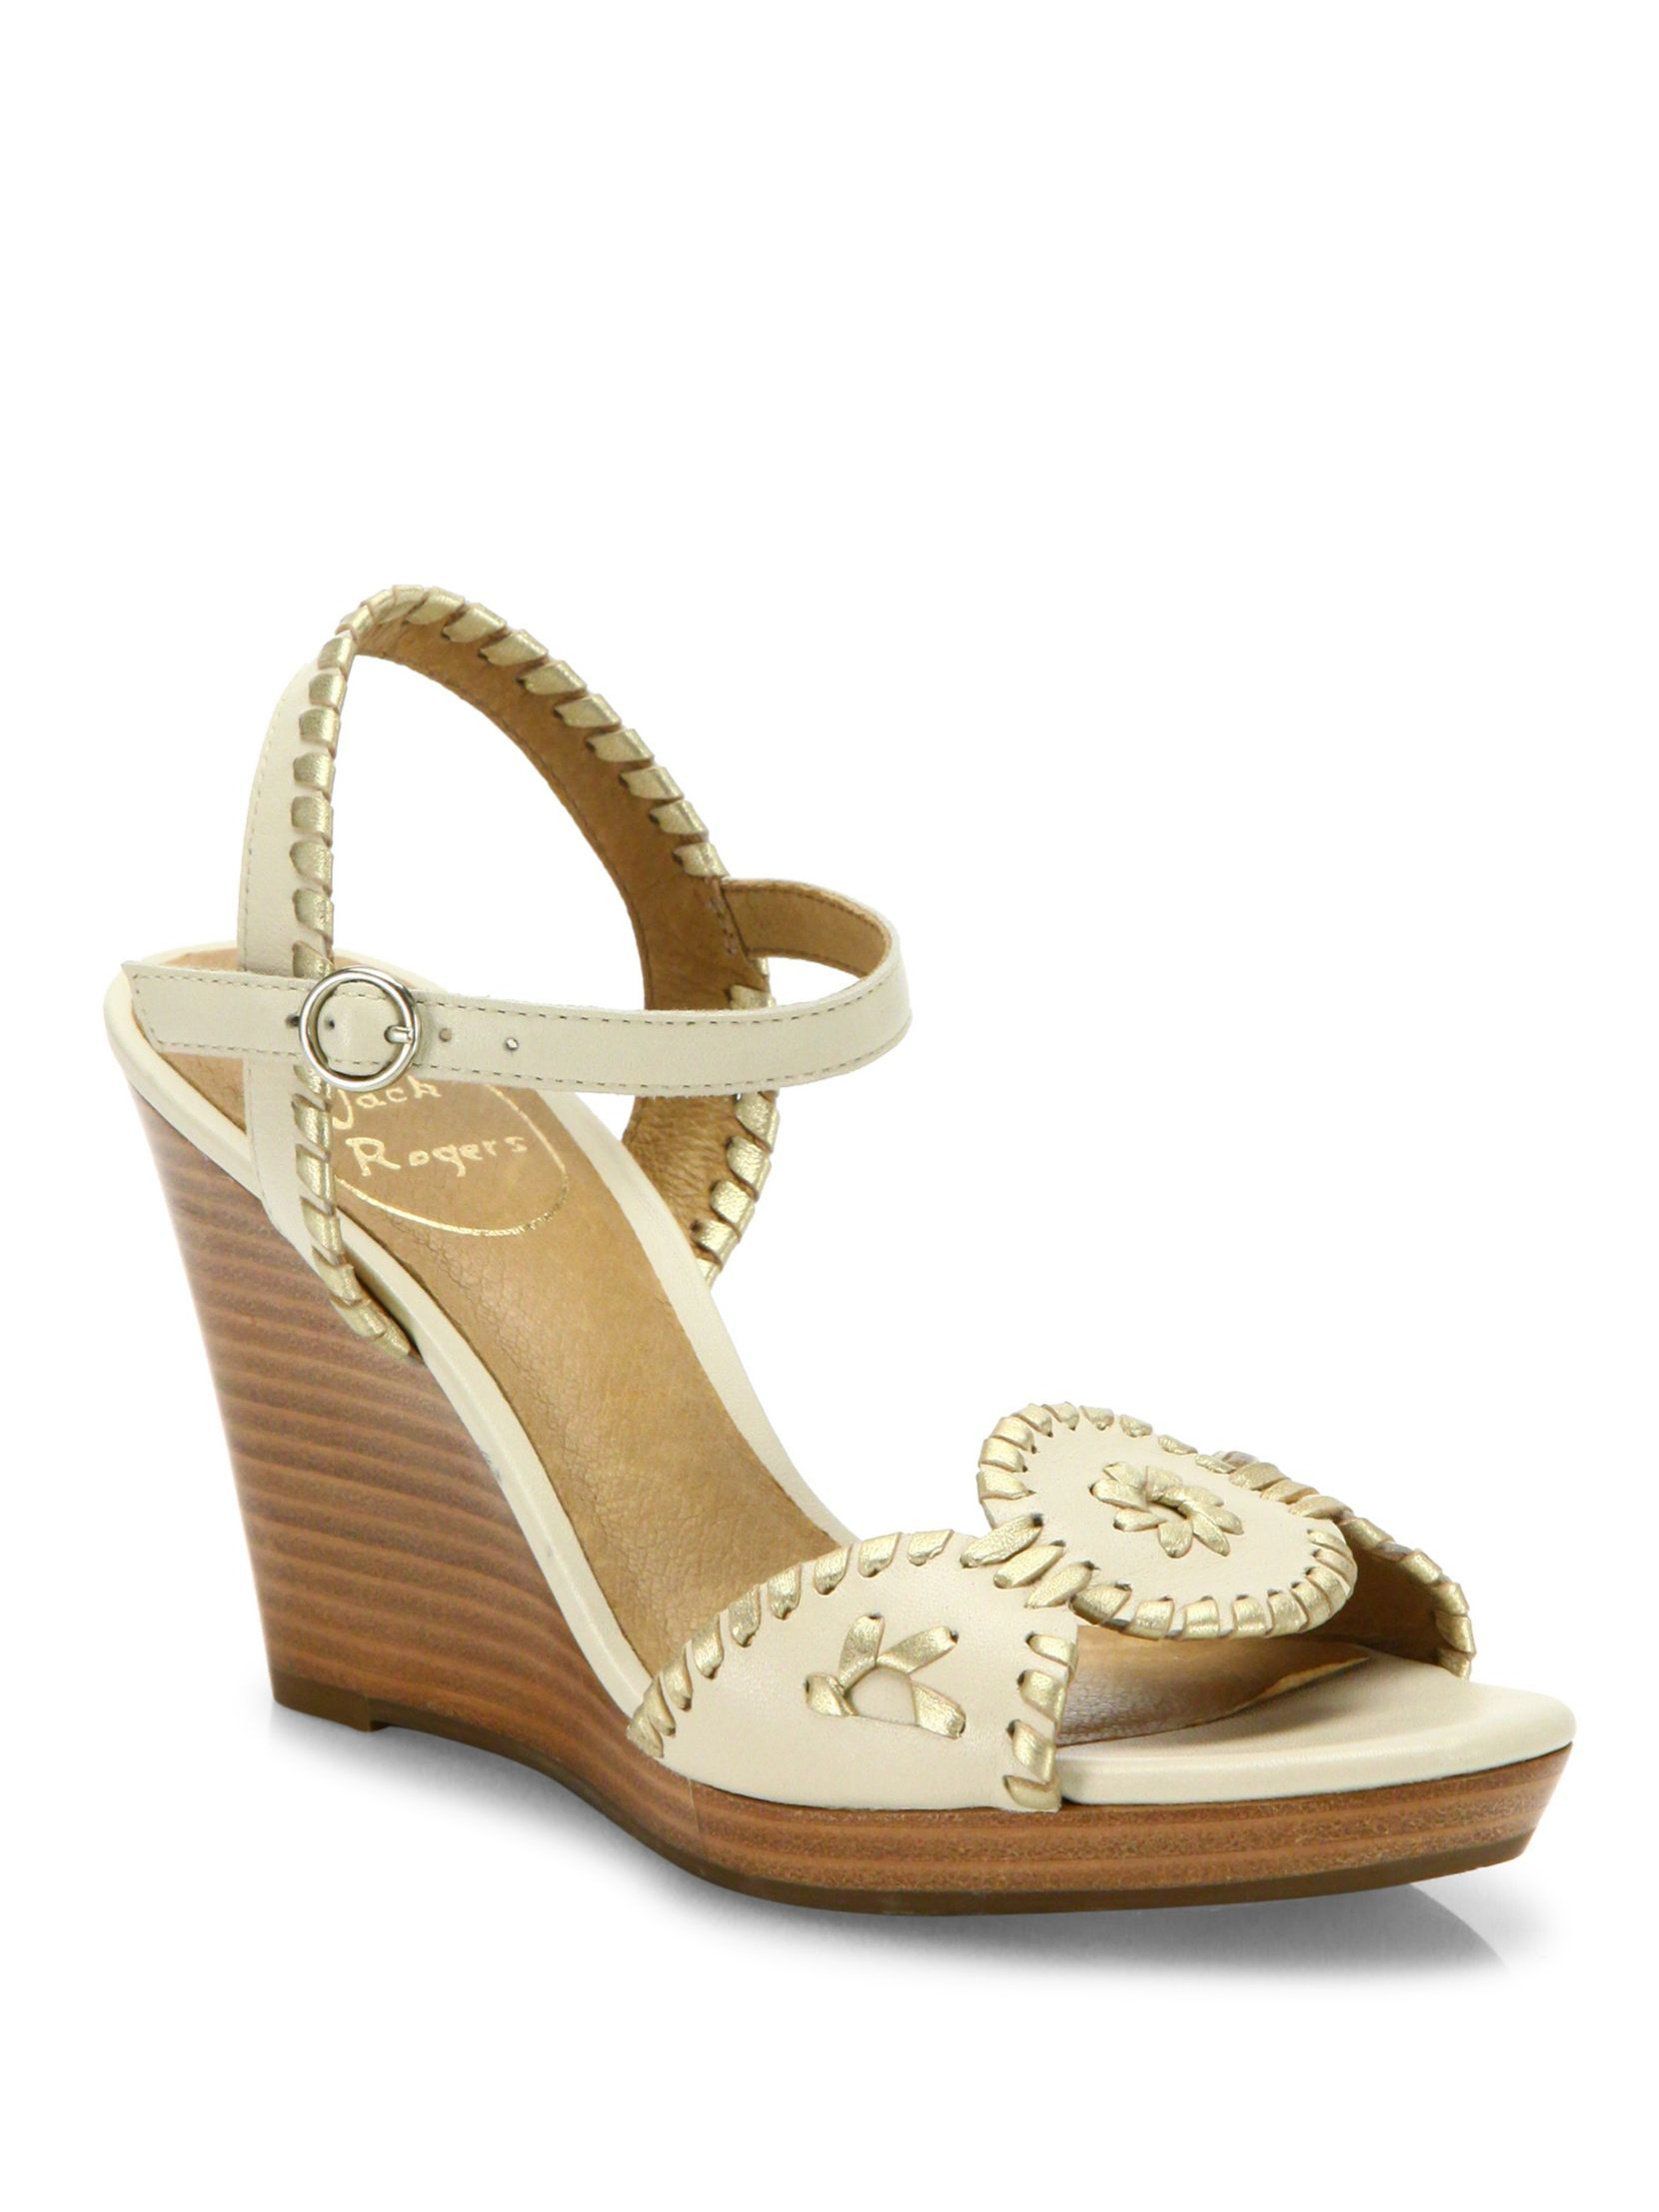 Jack Rogers Clare Whipstitch Leather Ankle-Strap Wedge Sandals